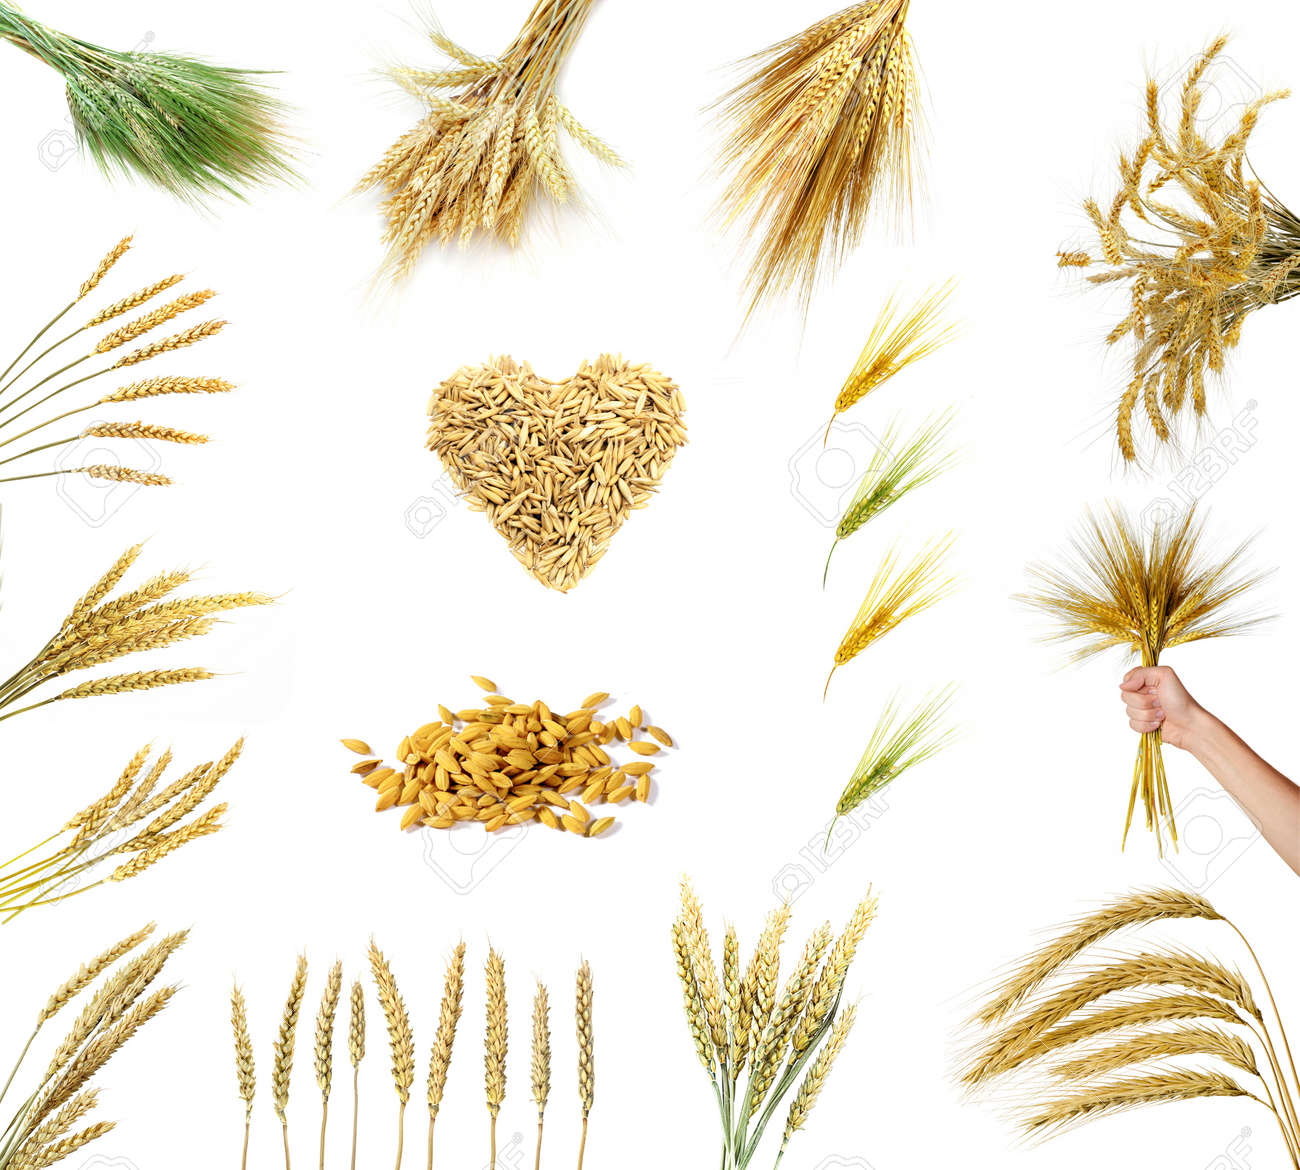 Set of golden wheat ears isolated on white background Stock Photo - 9635295